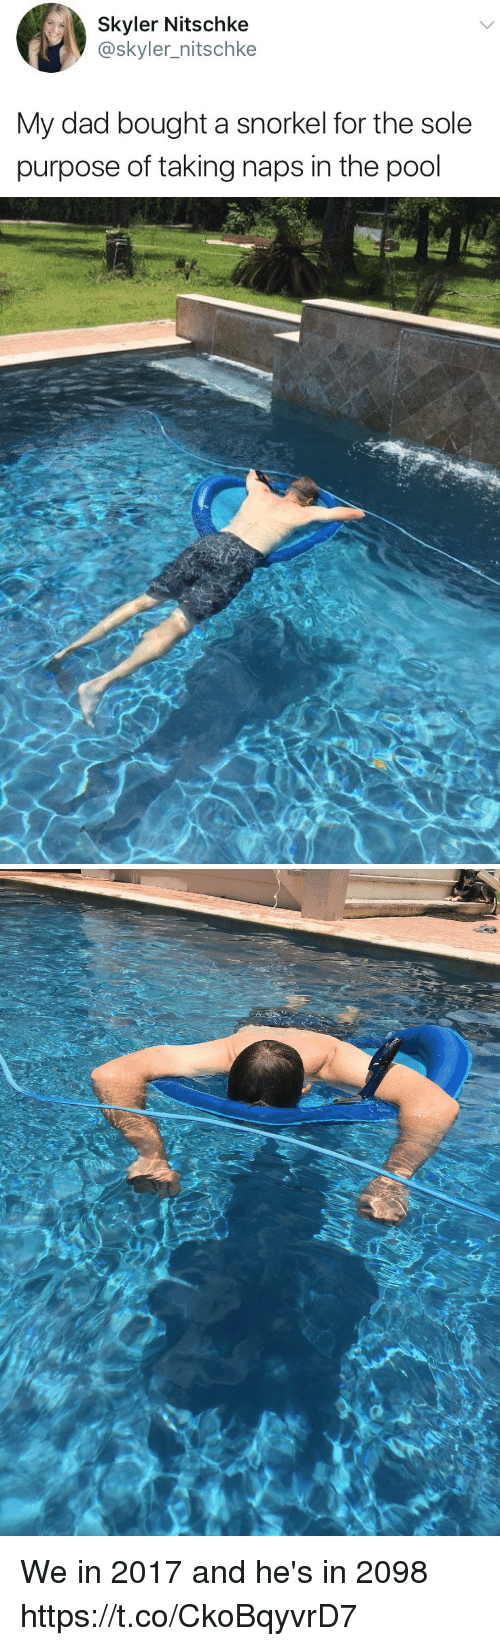 skyler: Skyler Nitschke  @skyler_nitschke  My dad bought a snorkel for the sole  purpose of taking naps in the pool We in 2017 and he's in 2098 https://t.co/CkoBqyvrD7